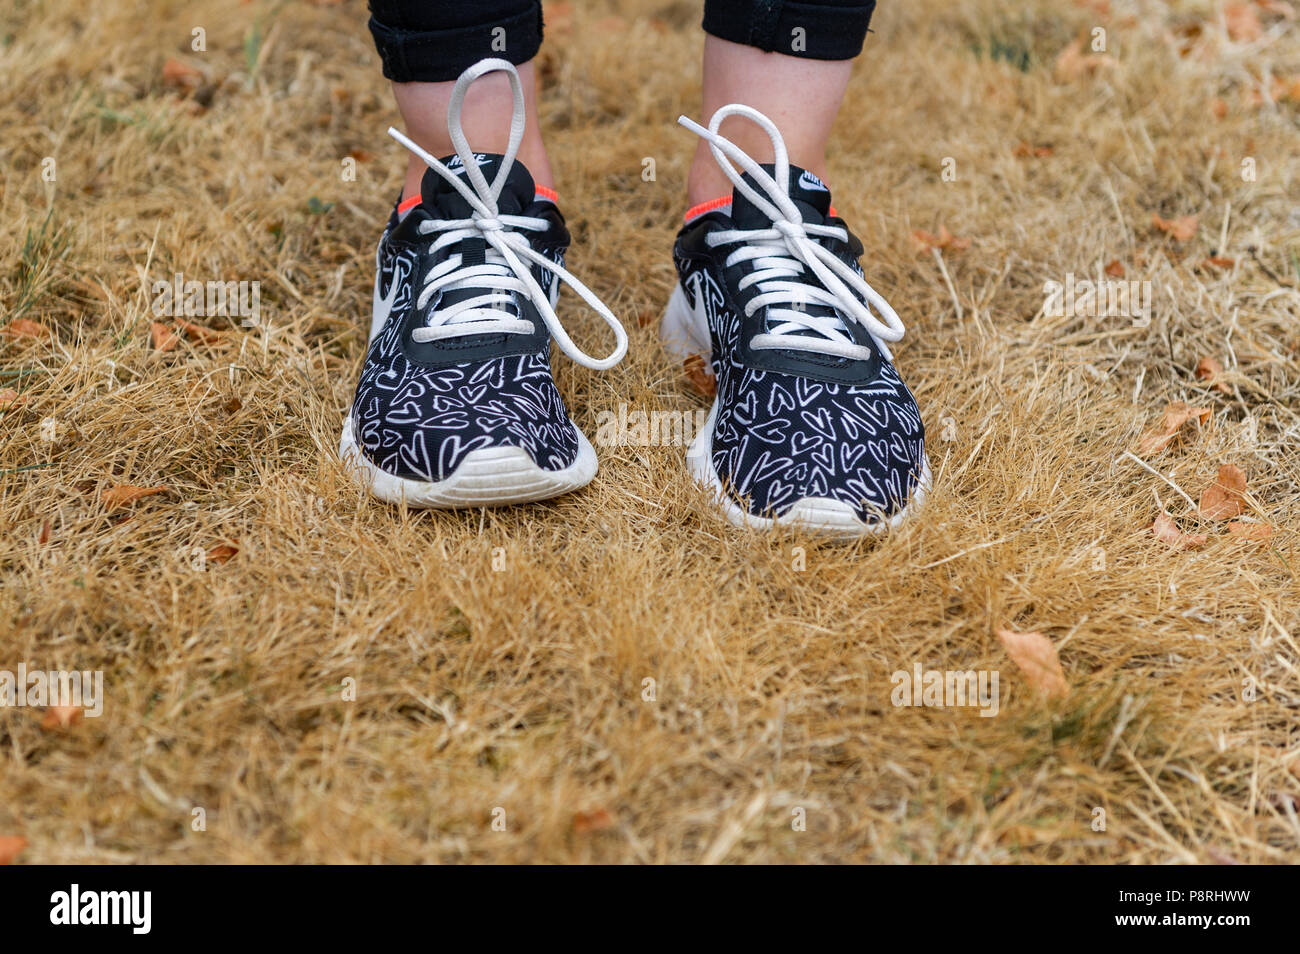 Dead grass due to the heatwave/drought with a young girl standing on it wearing training shoes in West Cork, Ireland. - Stock Image